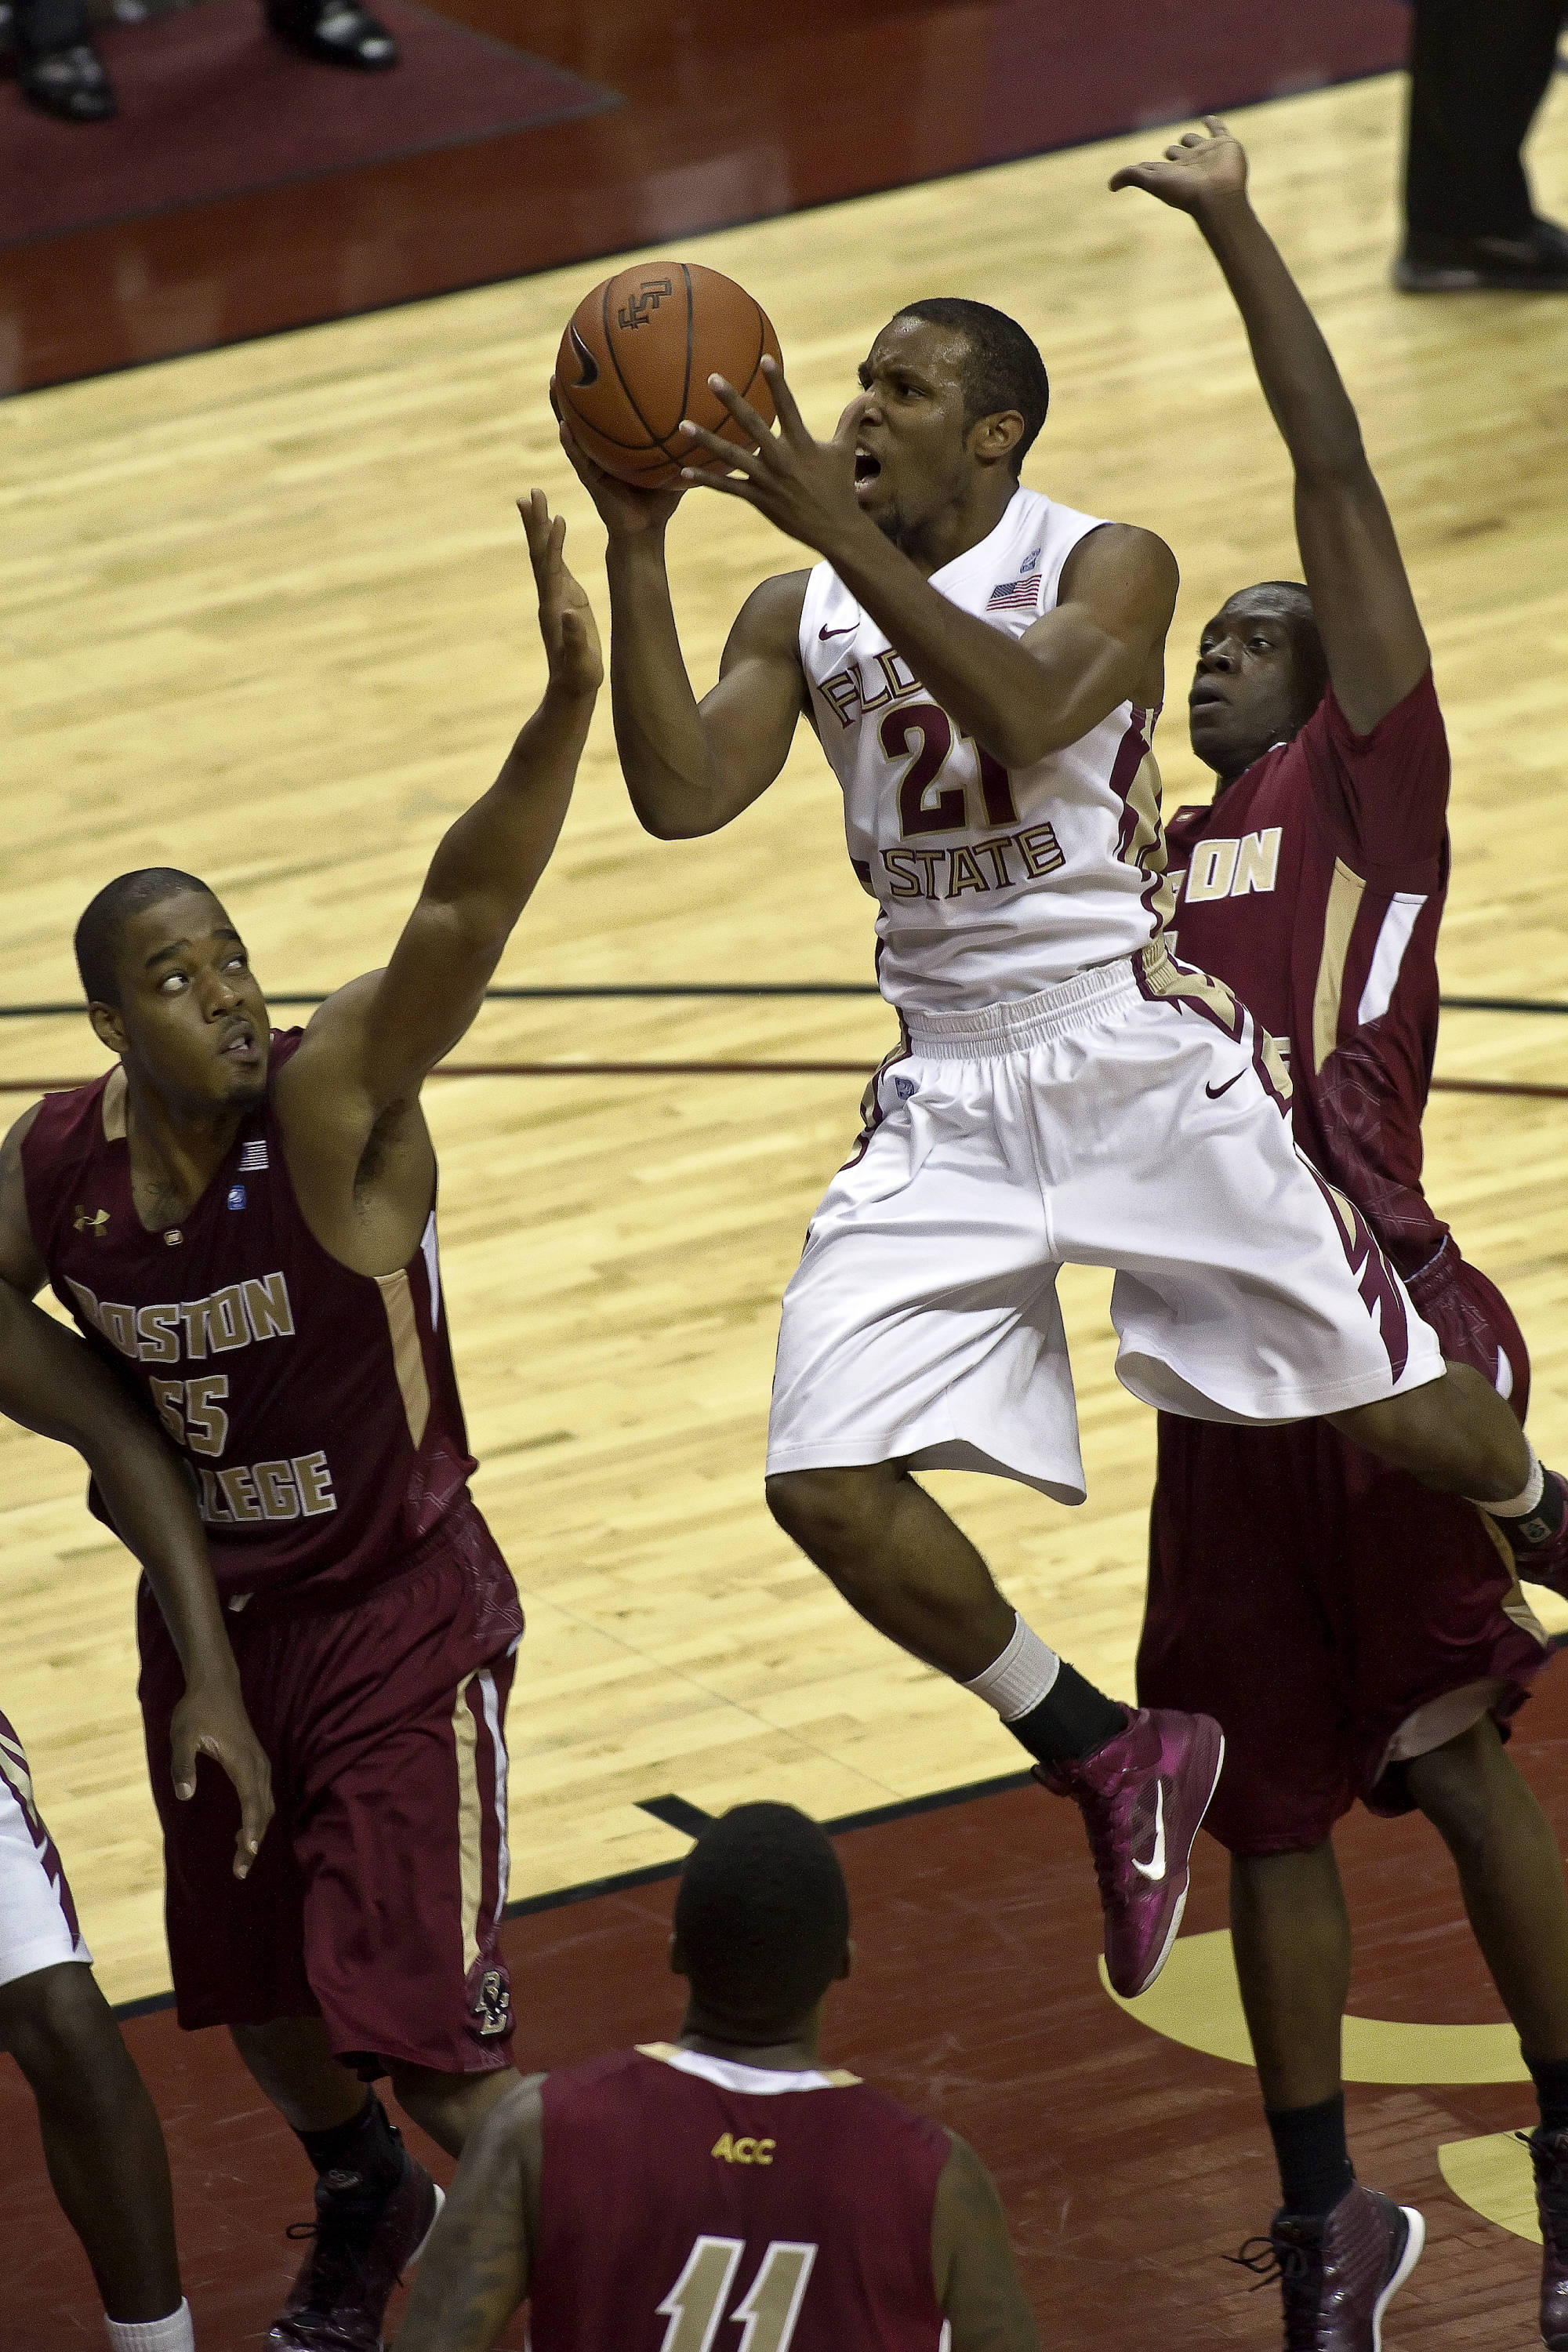 FSU vs Boston College - 01/22/11 - Michael Snaer (21)